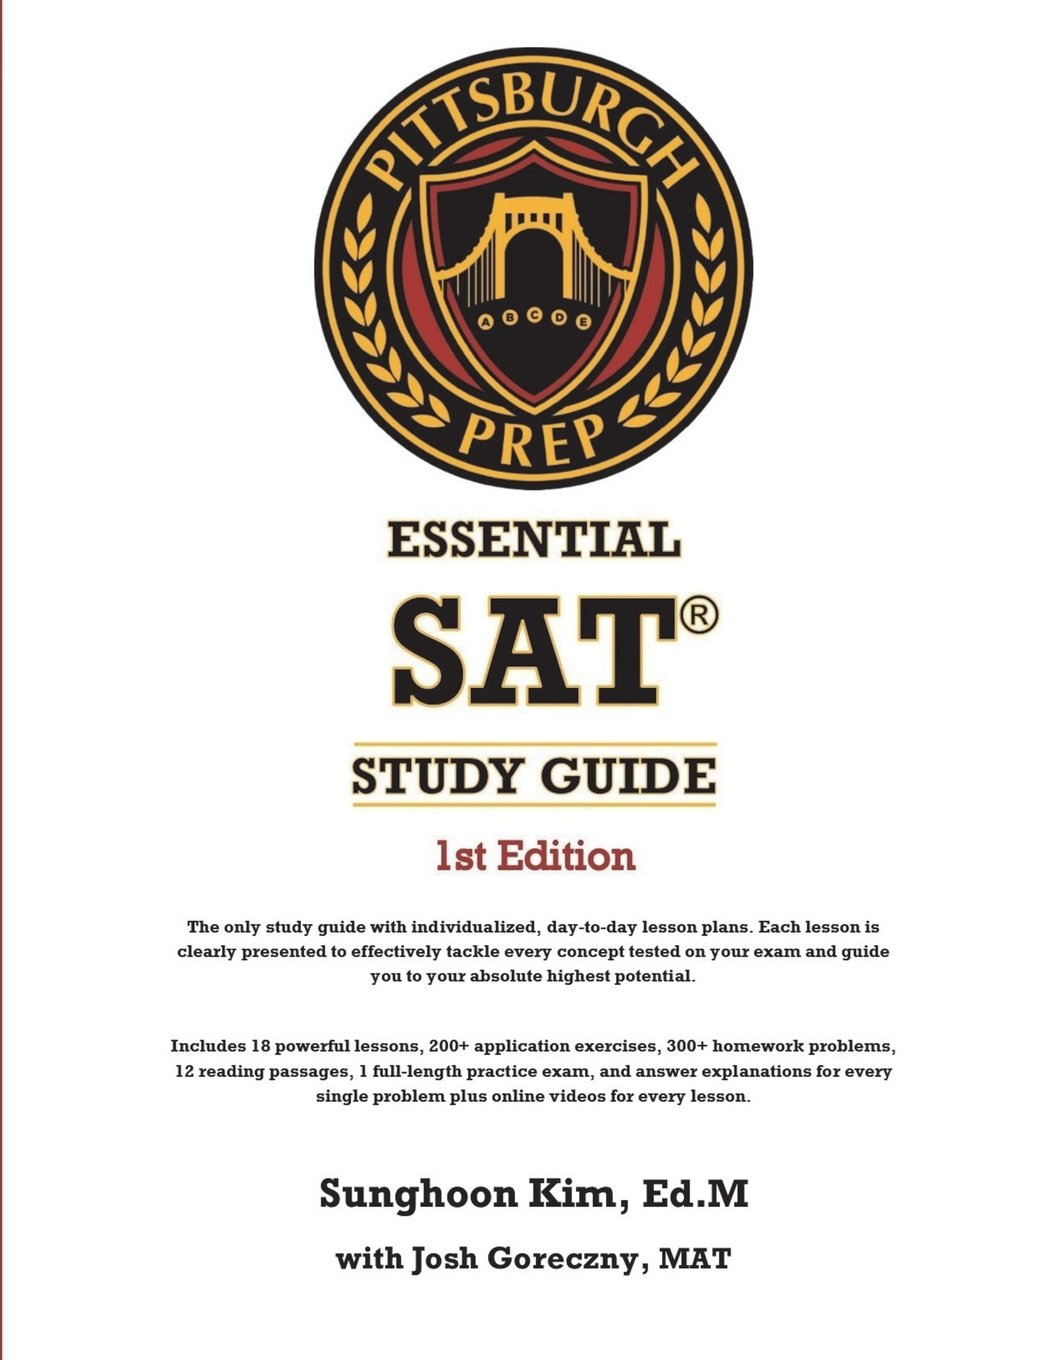 Buy Pittsburgh Prep Essential SAT Study Guide 1st Edition: The Most  Comprehensive and Versatile SAT Study Guide on the Planet Book Online at  Low Prices in ...